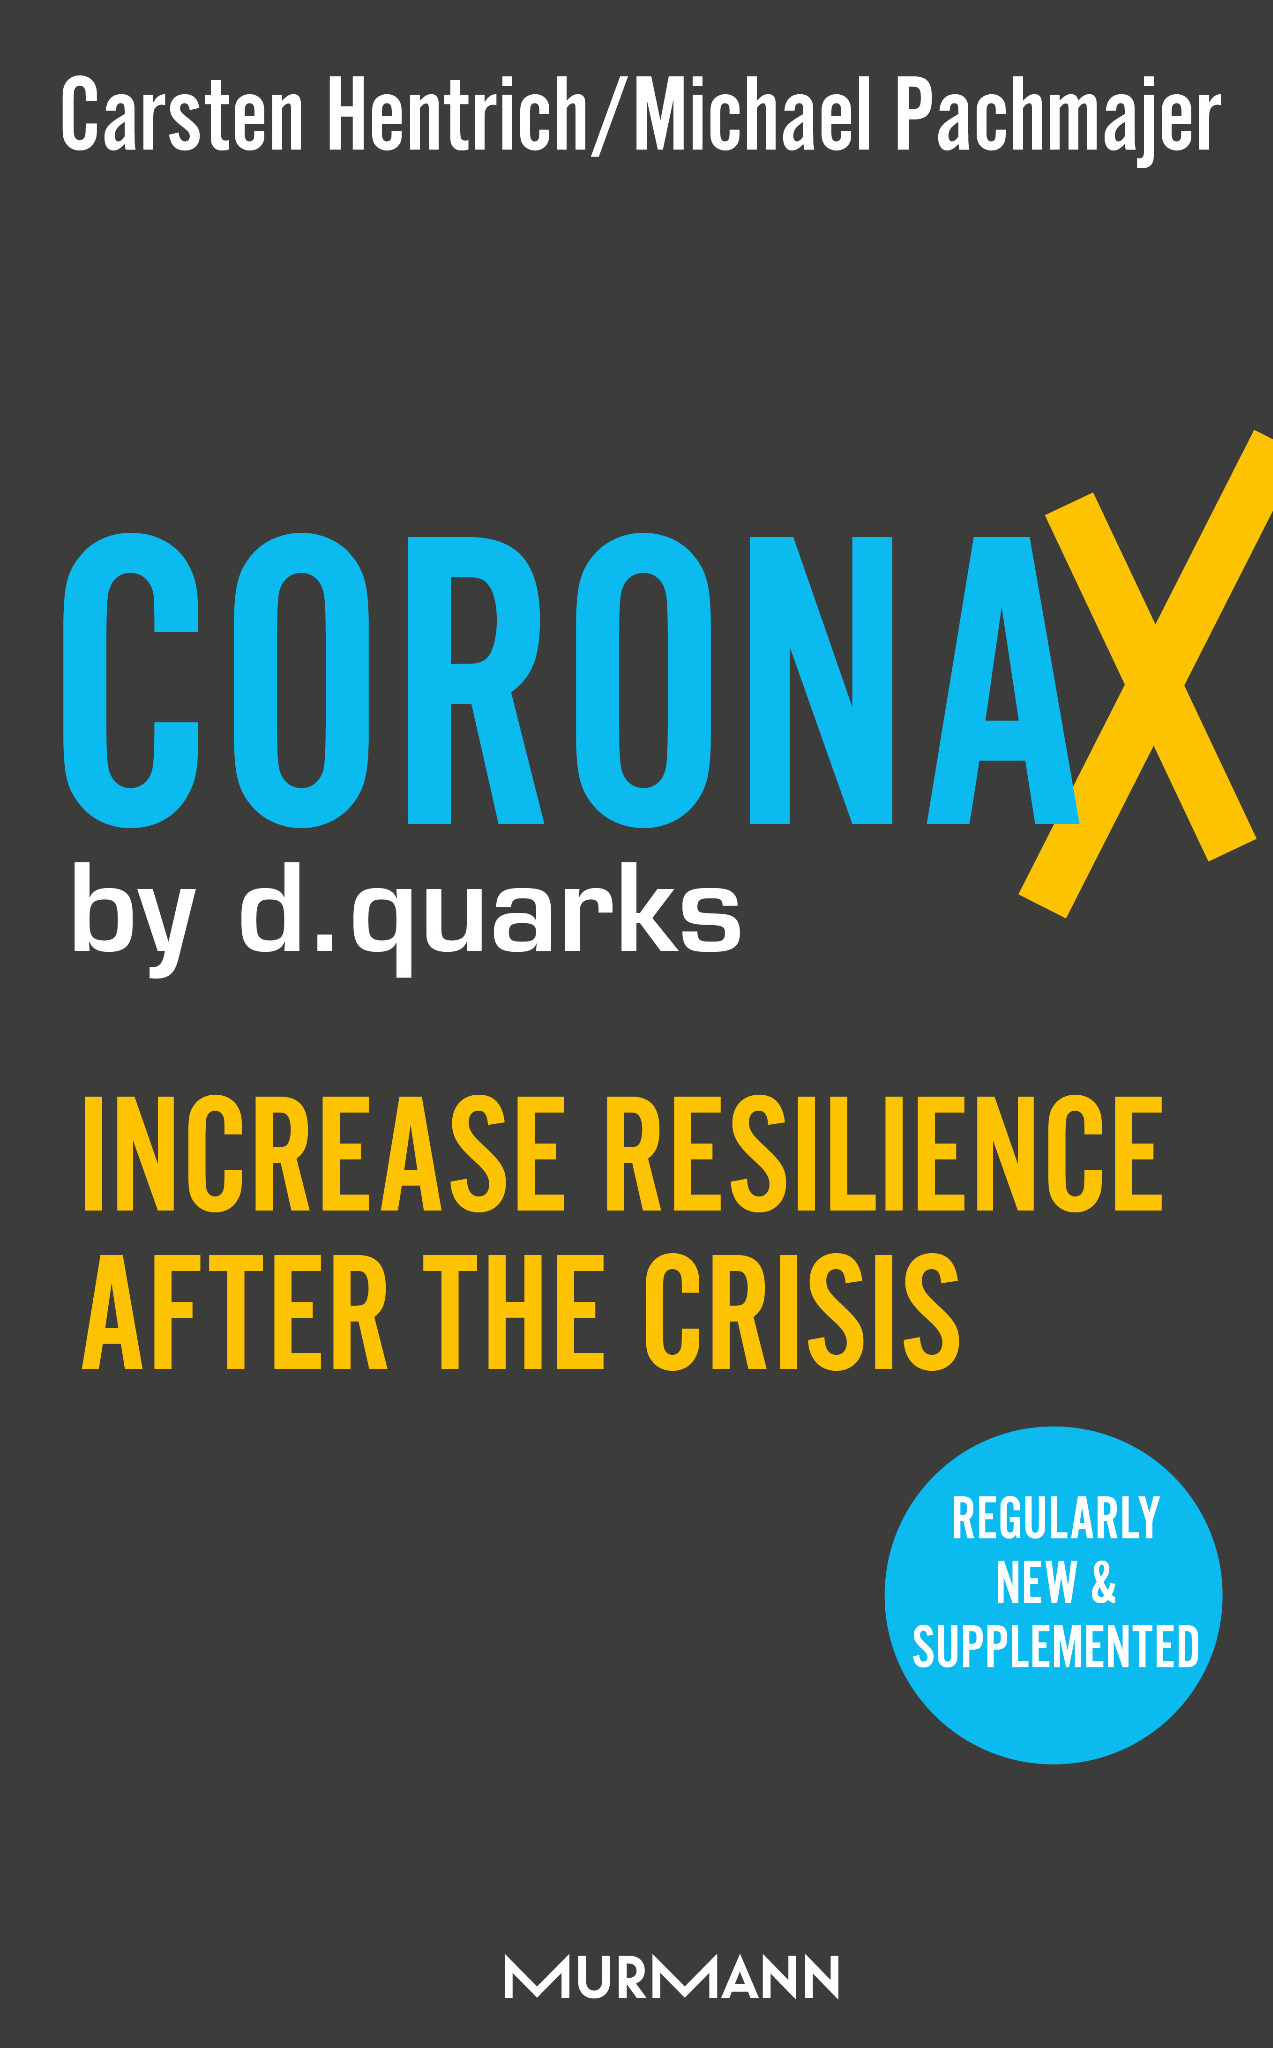 CoronaX by d.quarks (engl. version) / Michael Pachmajer, Carsten Hentrich (E-Book-Serie)